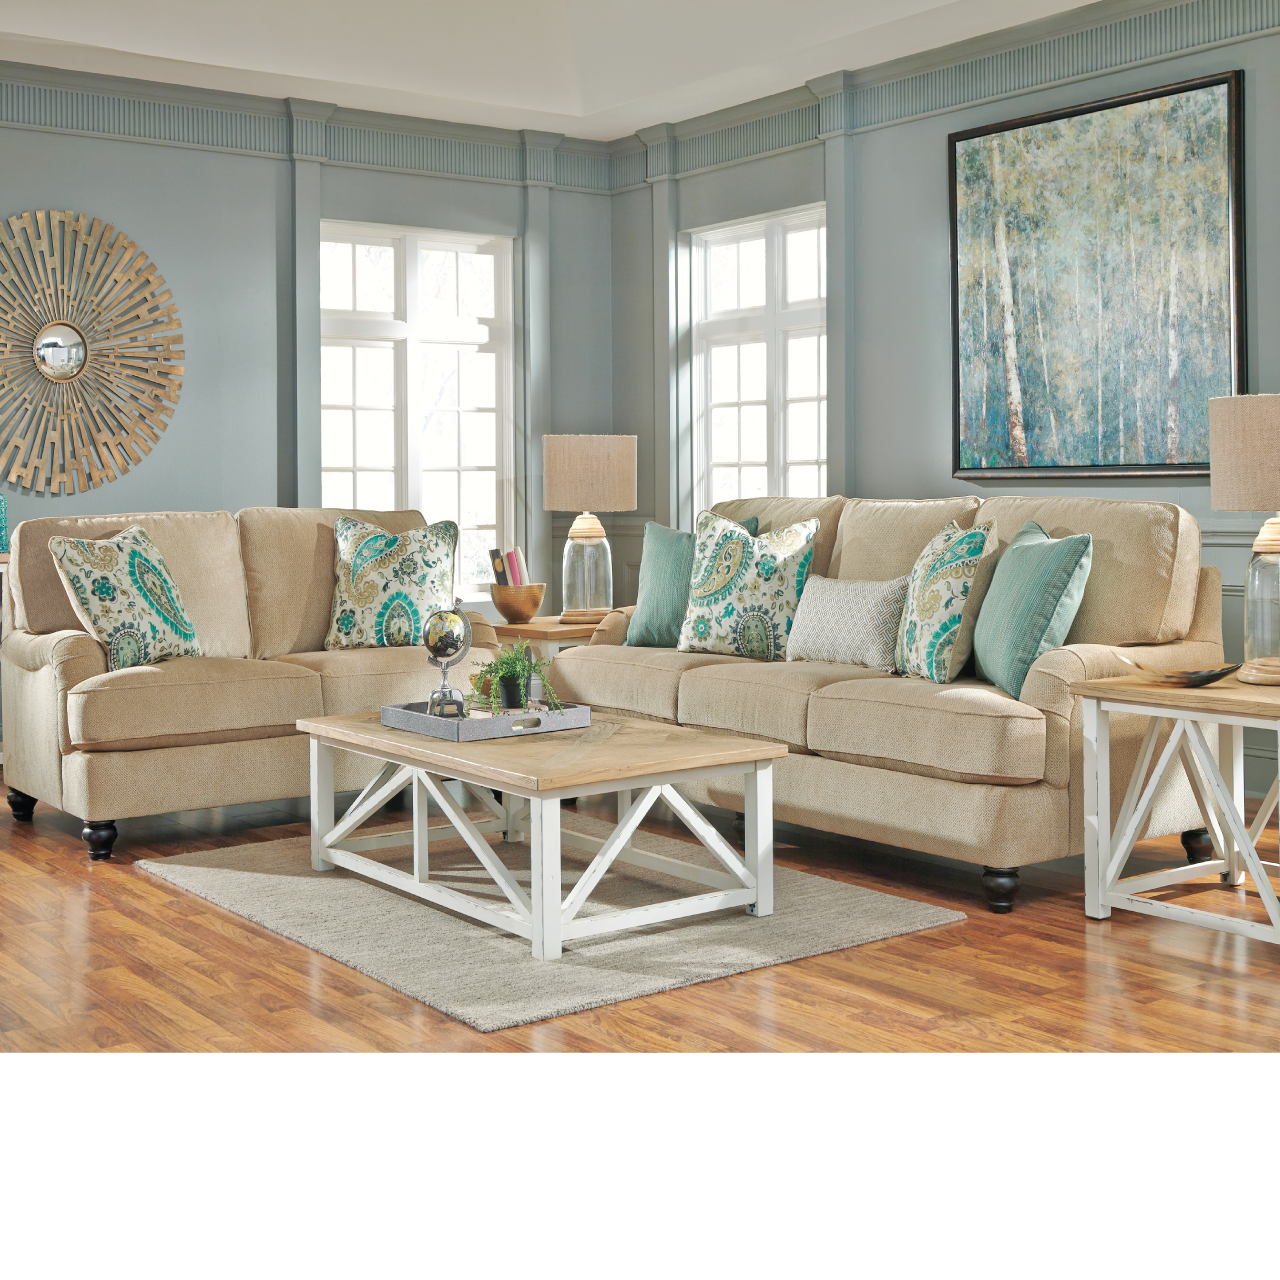 Coastal Living Room Ideas: Lochian Sofa By Ashley Furniture At Kensington  Furniture. I Love